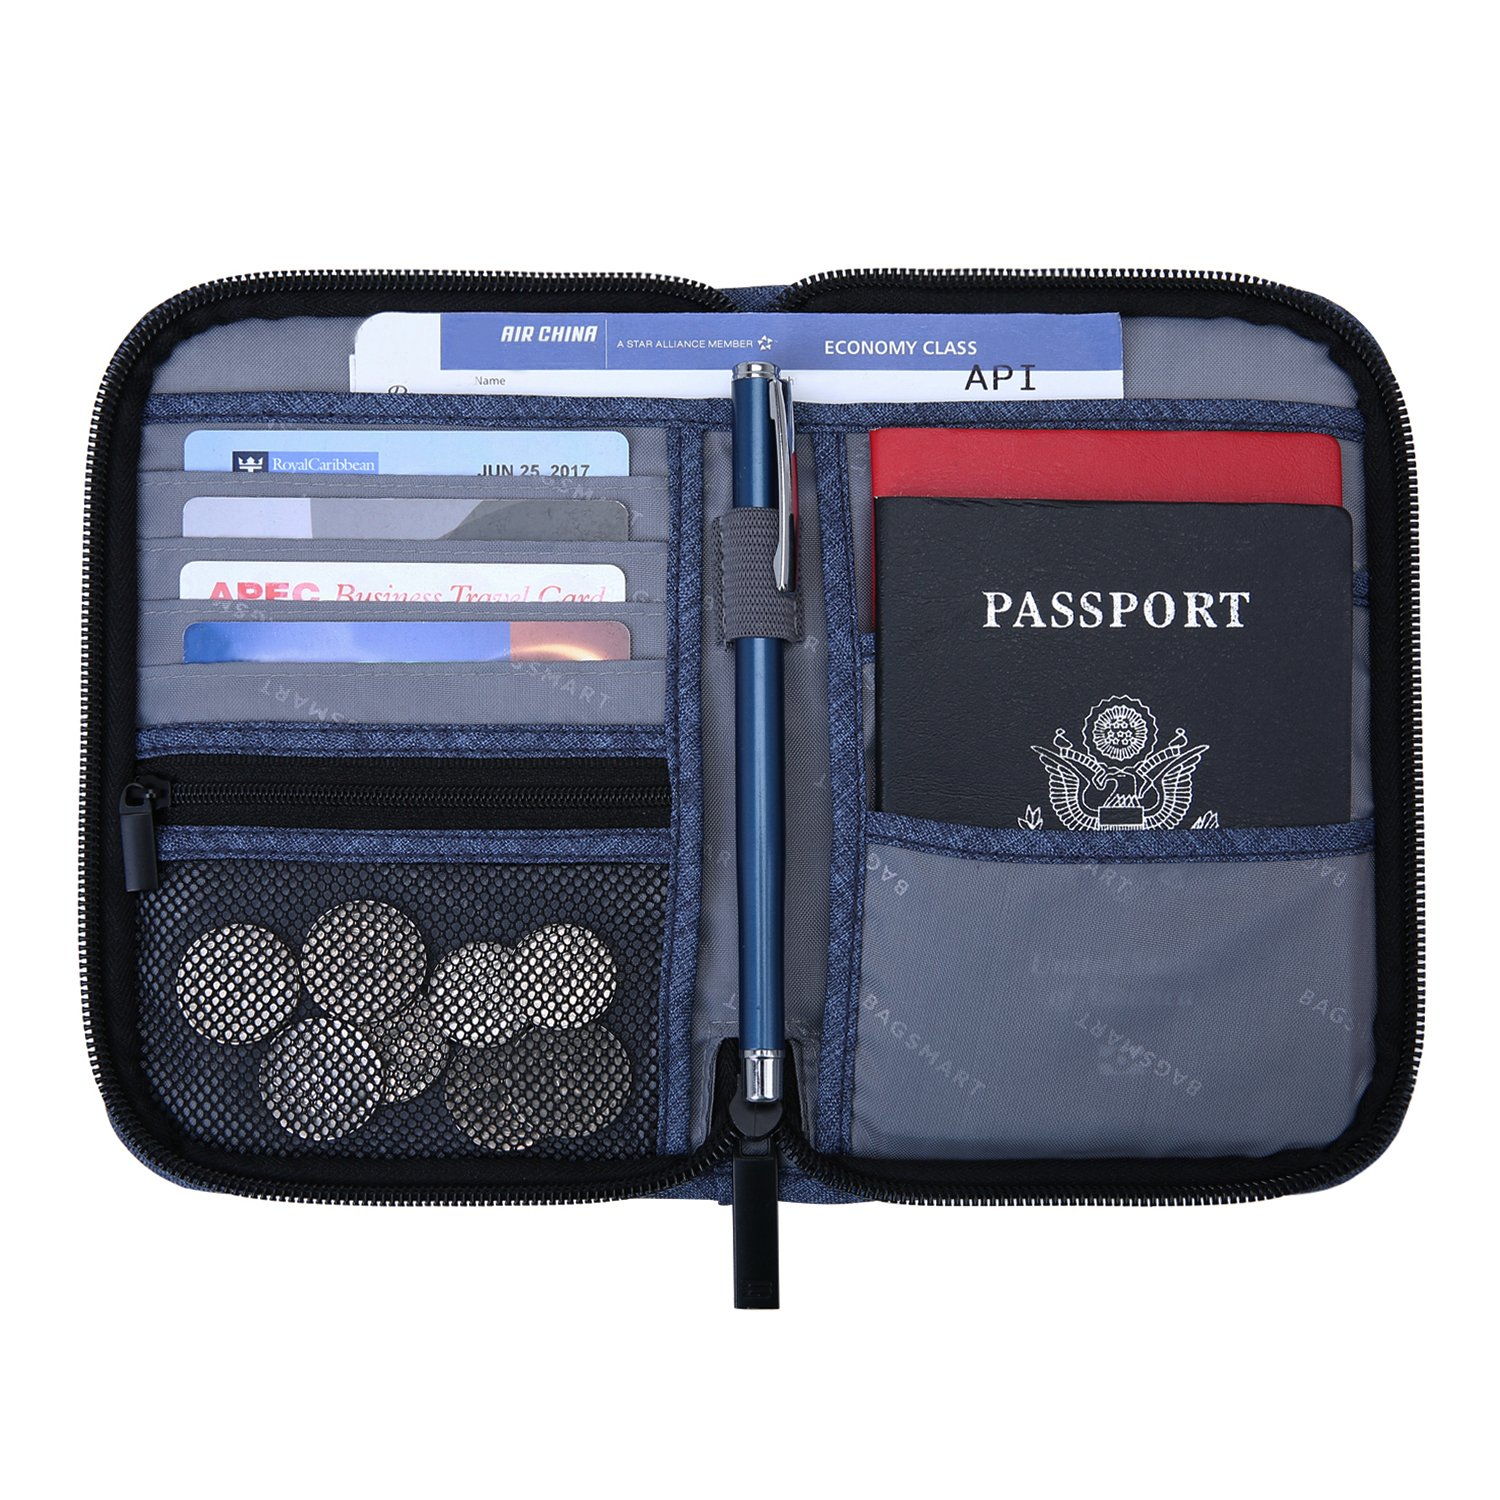 BAGSMART Travel RFID Blocking Wallet Passport Holder Cover Document Organizer for Men and Women BM0200093A001-FUS